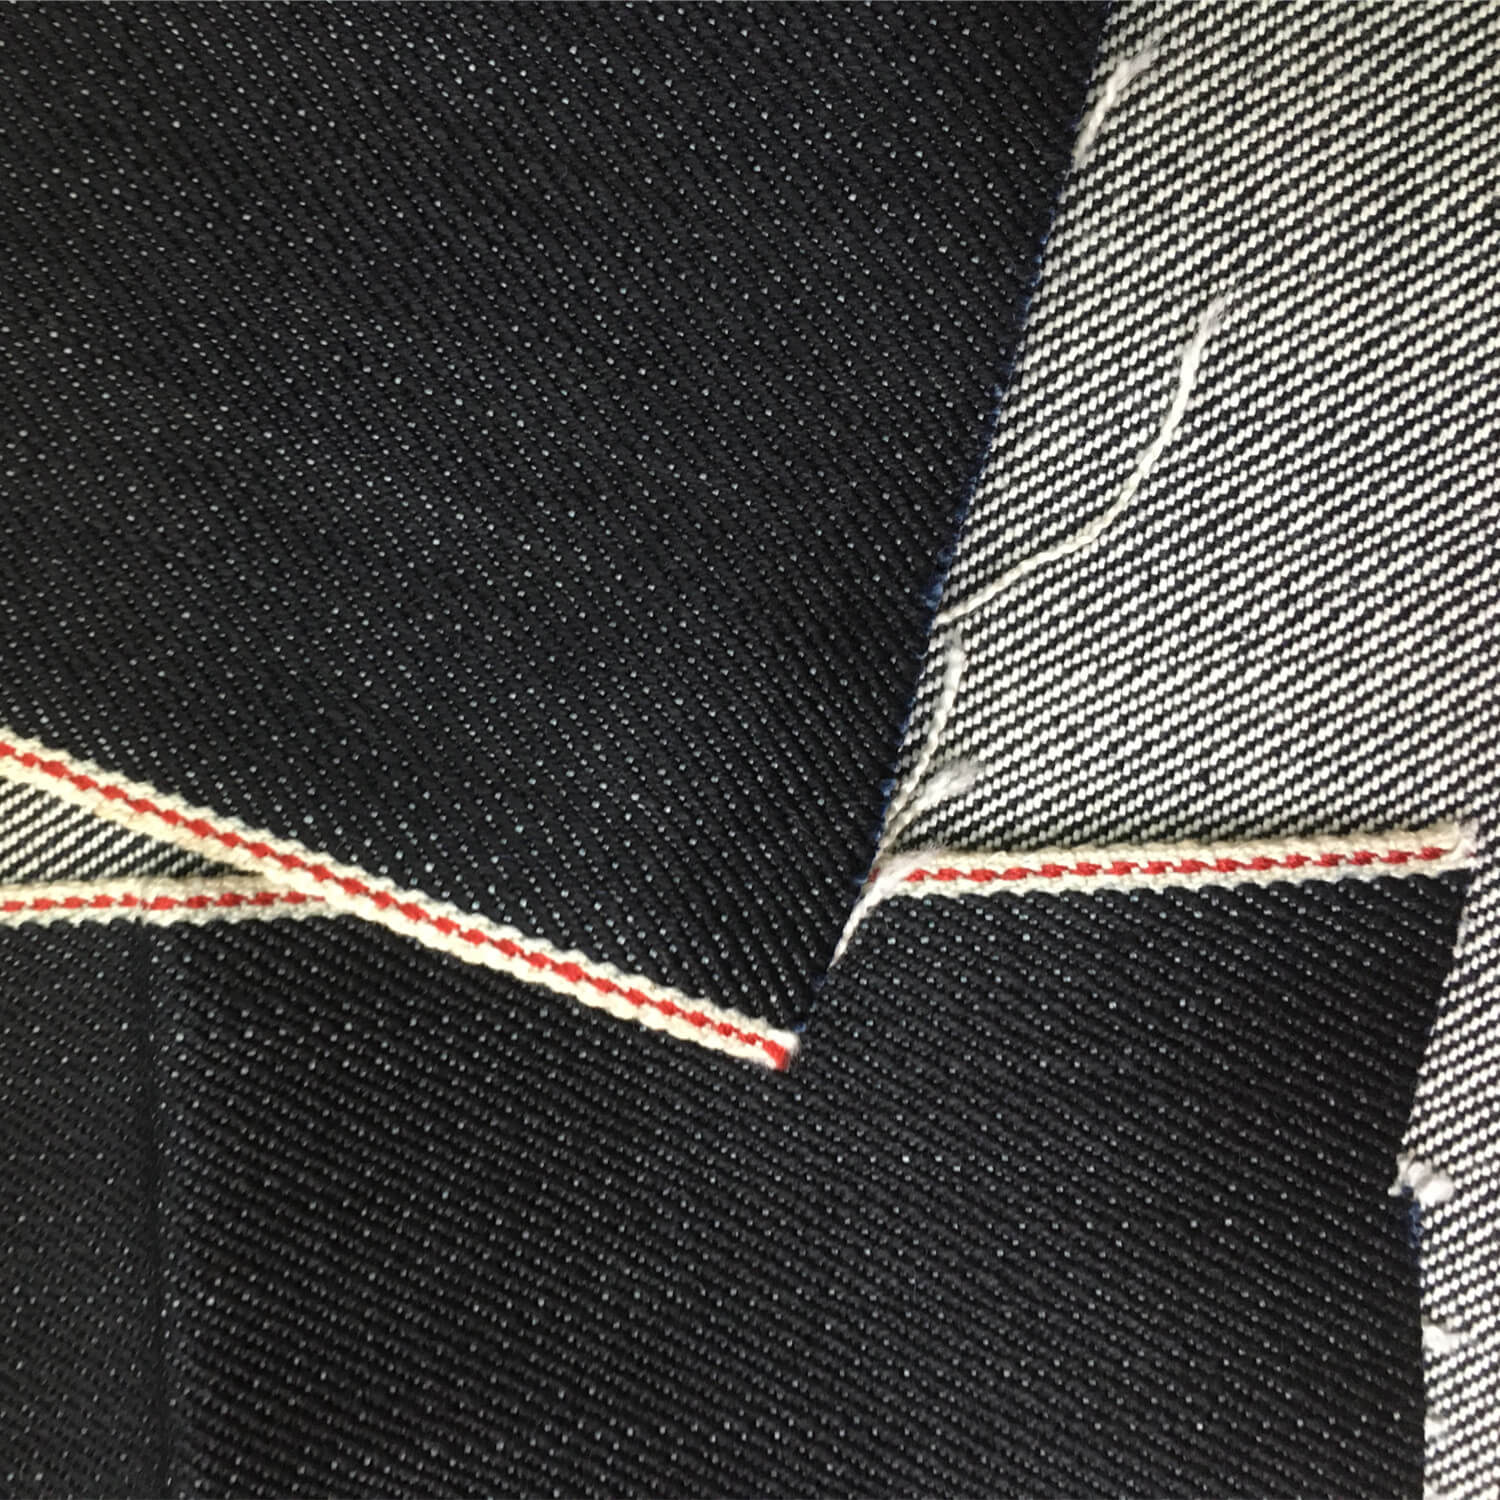 Wingfly Textile Co. Ltd Showcases a Large Number of Selvedge Denim Fabrics with Great Offers and Discounts for Clothing Business to Select Suitable Ones